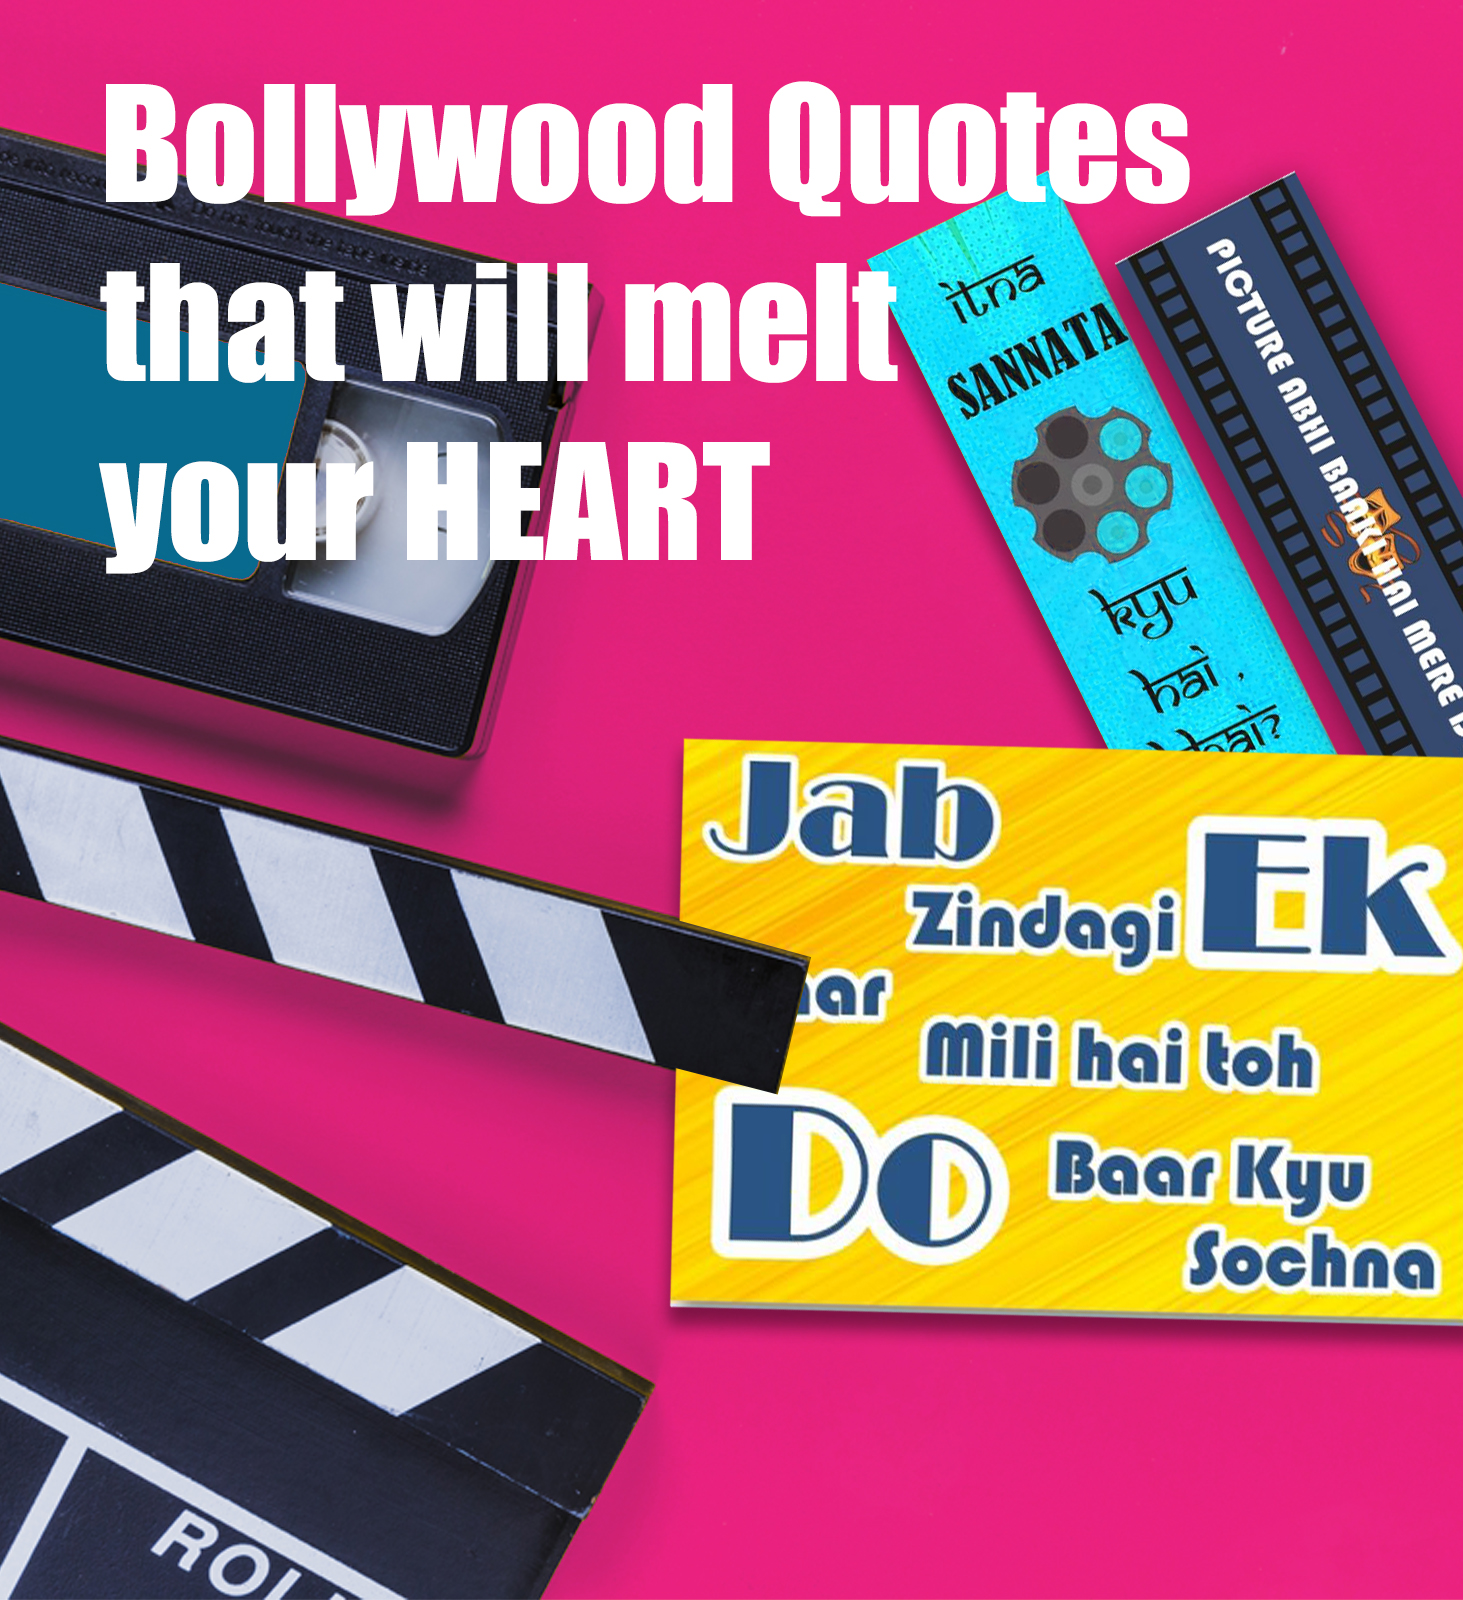 Bollywood Quotes that will melt your Heart